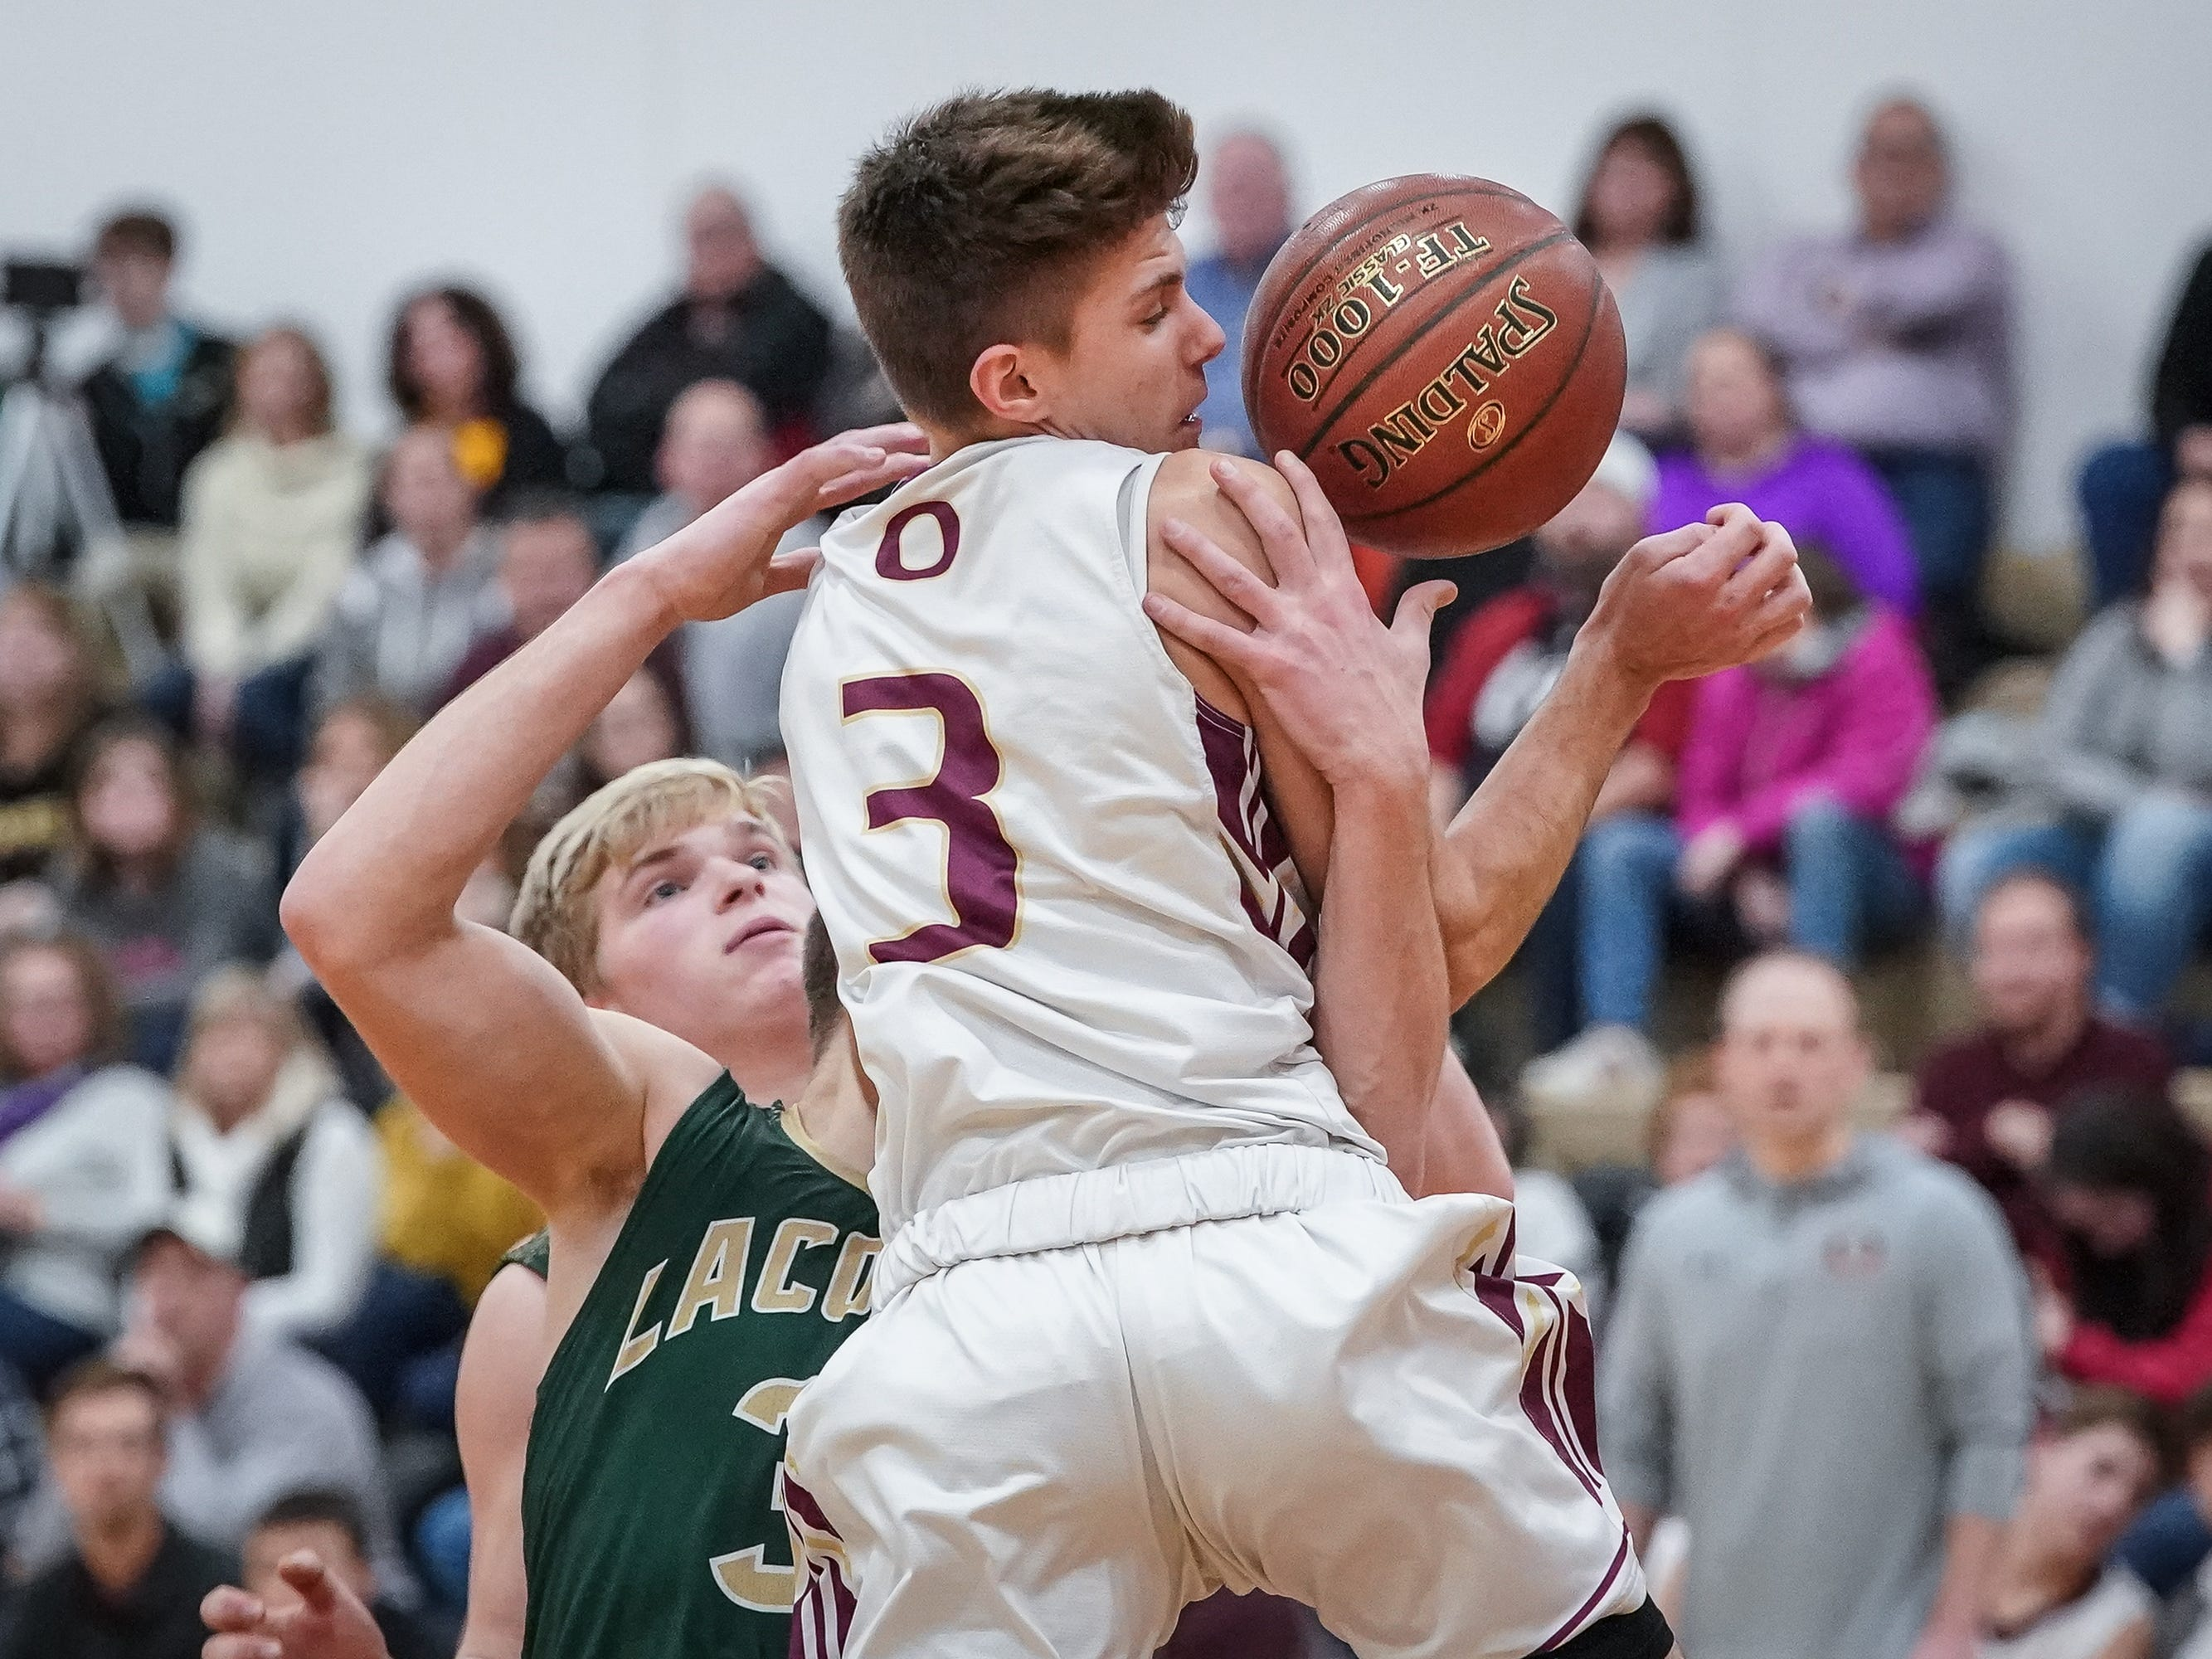 Austin Bauer (3) of Omro battles Reed Gunnink (3) of Laconia. The Omro Foxes hosted the Laconia Spartans in a Flyway Conference basketball game Friday evening, January 11, 2019.